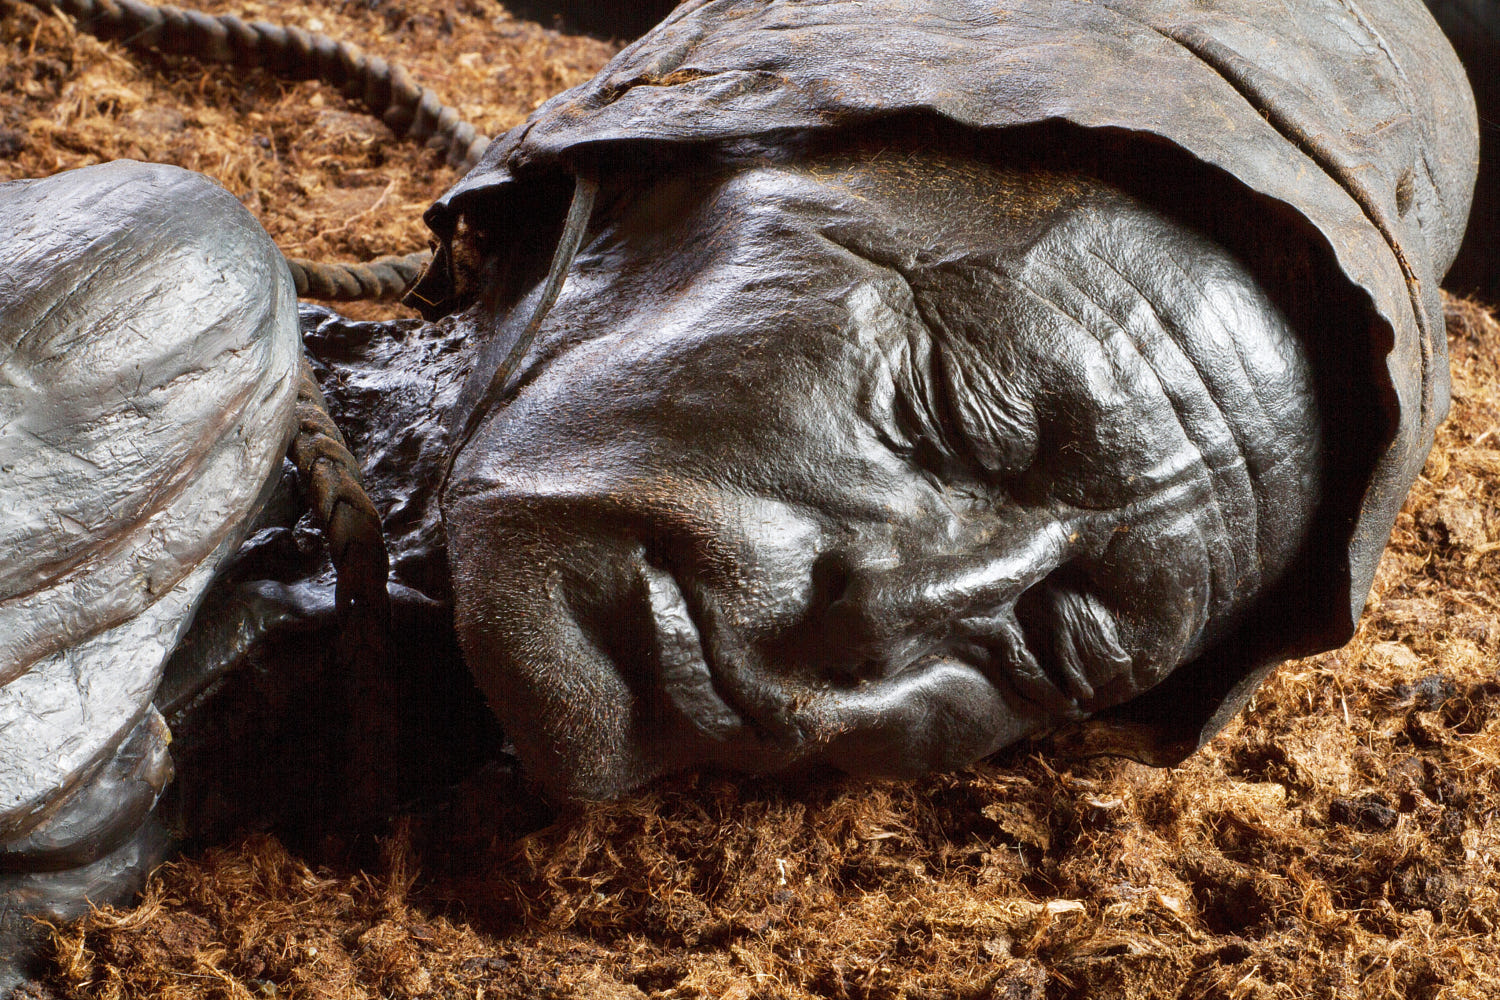 Tollund Man, One of the best preserved bodies in the world